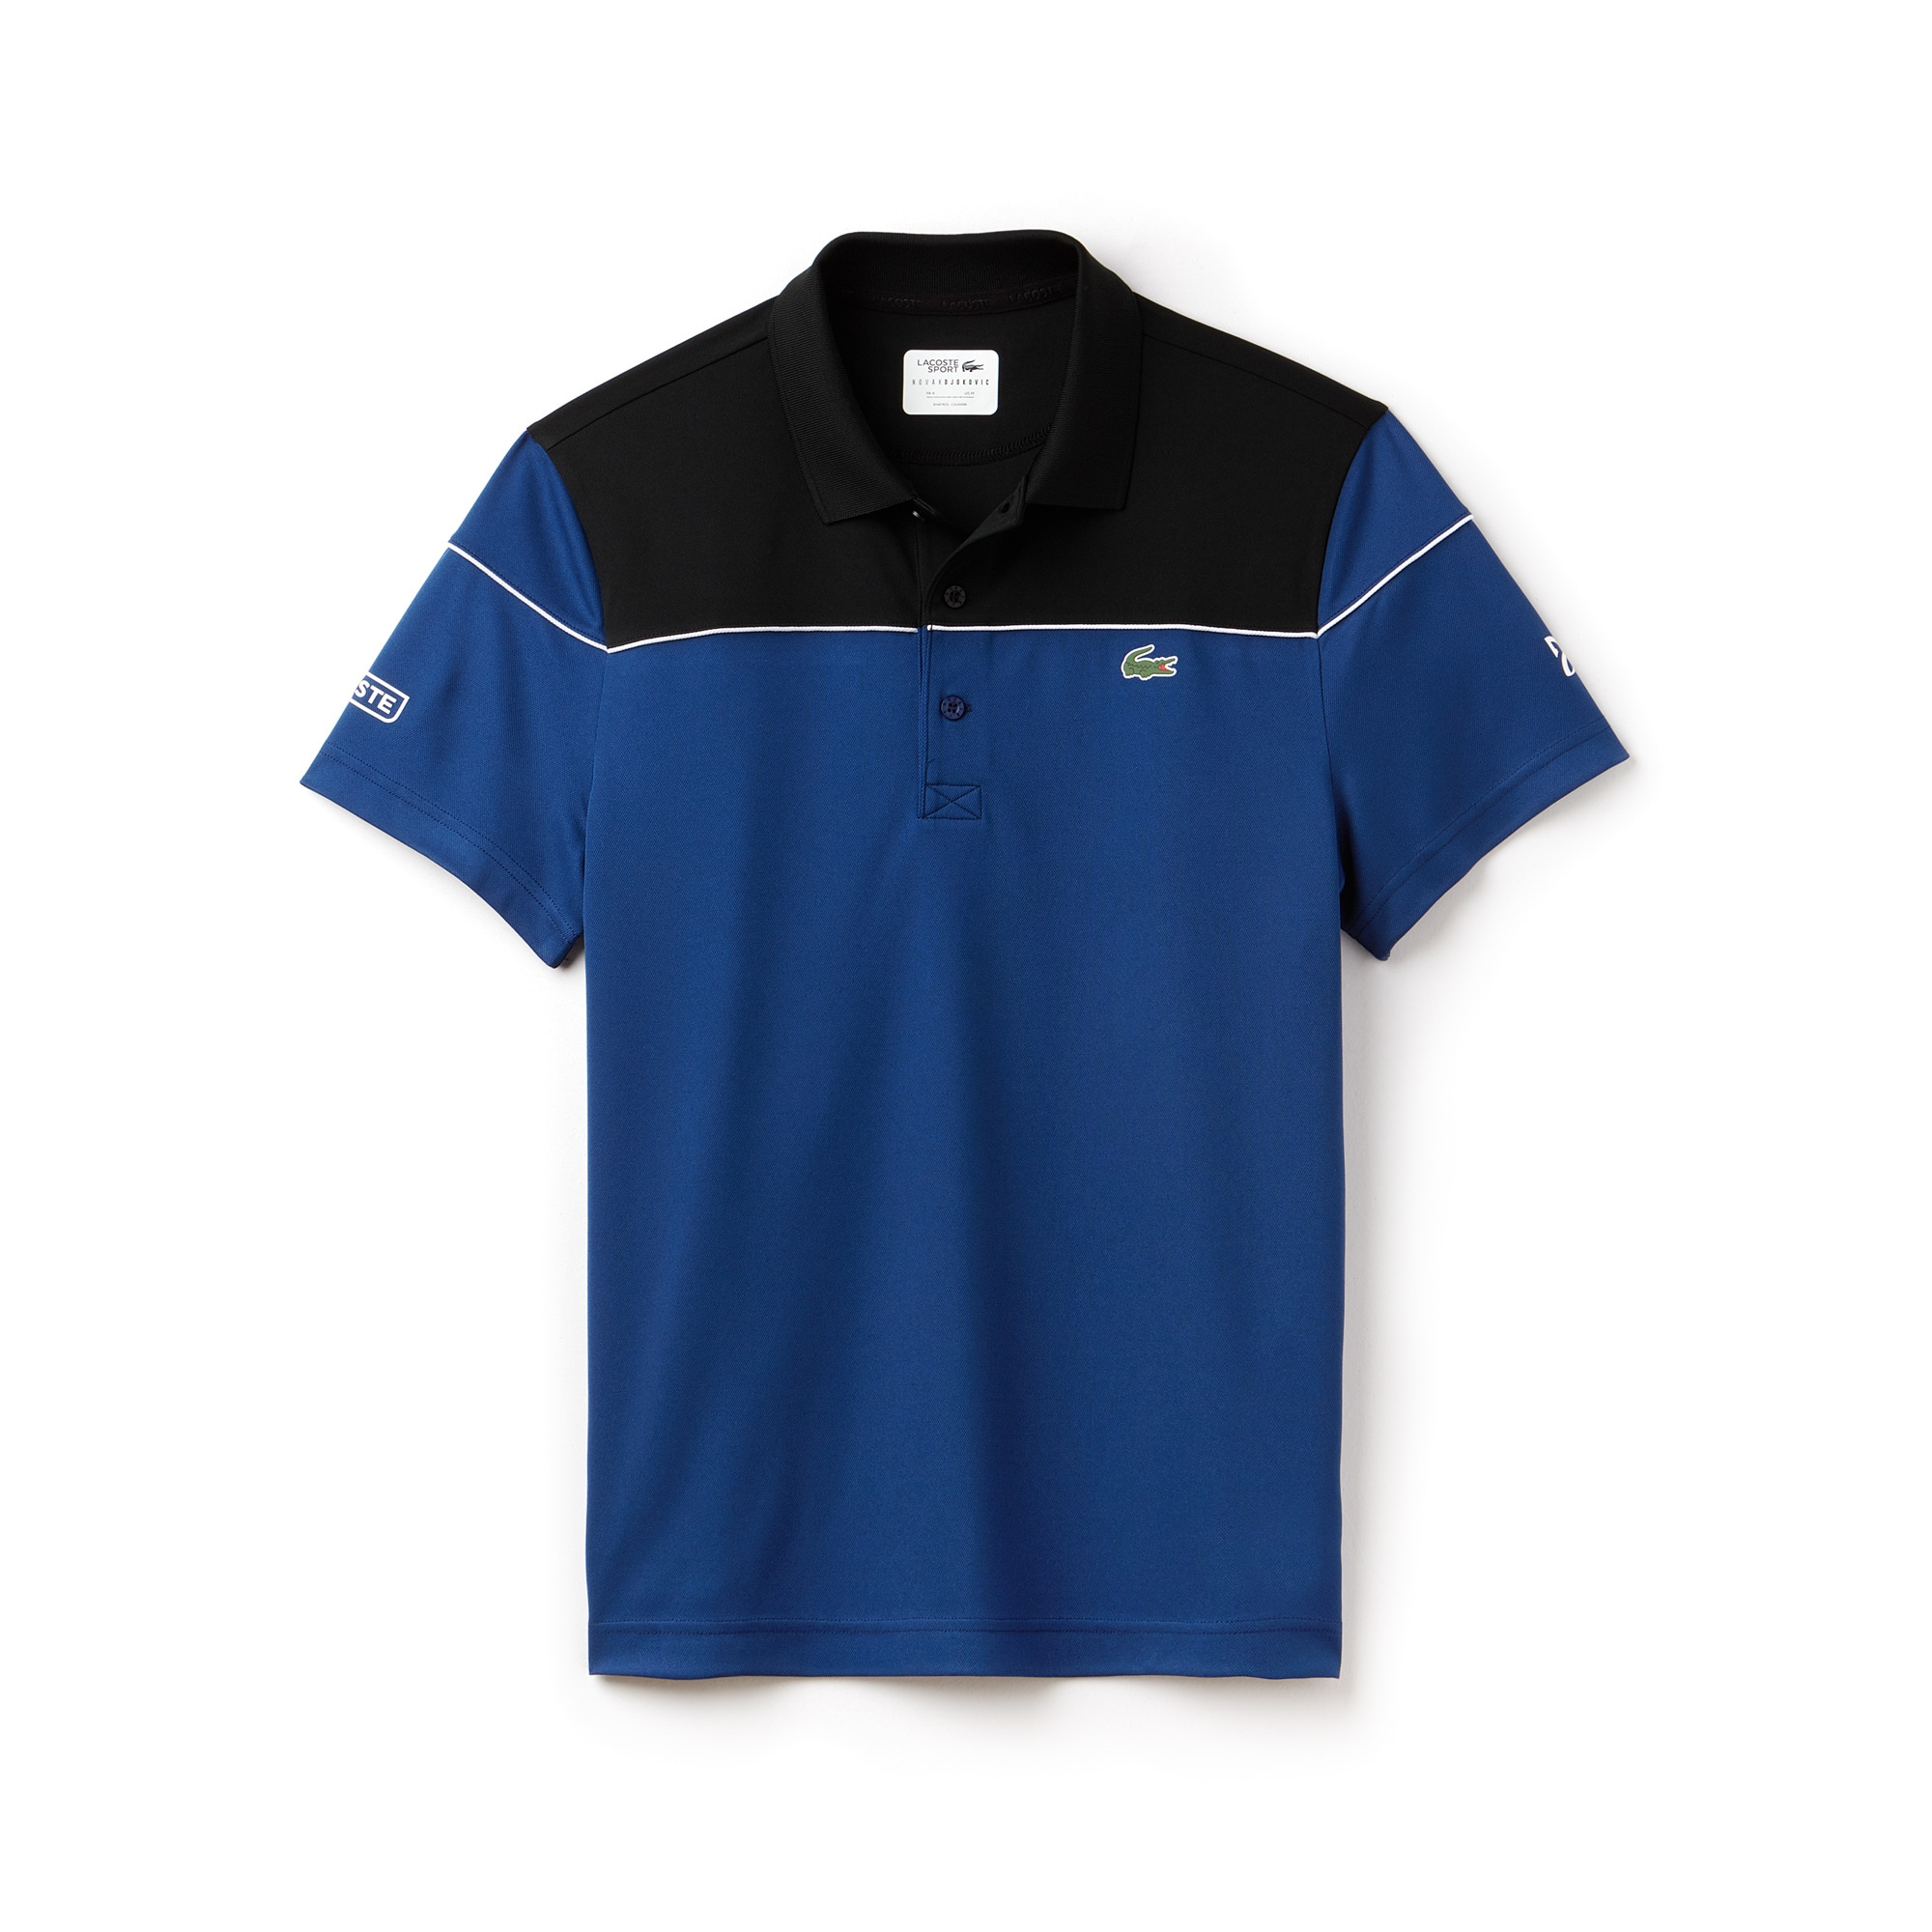 Men's SPORT Tech Piqué Polo - Novak Djokovic Collection